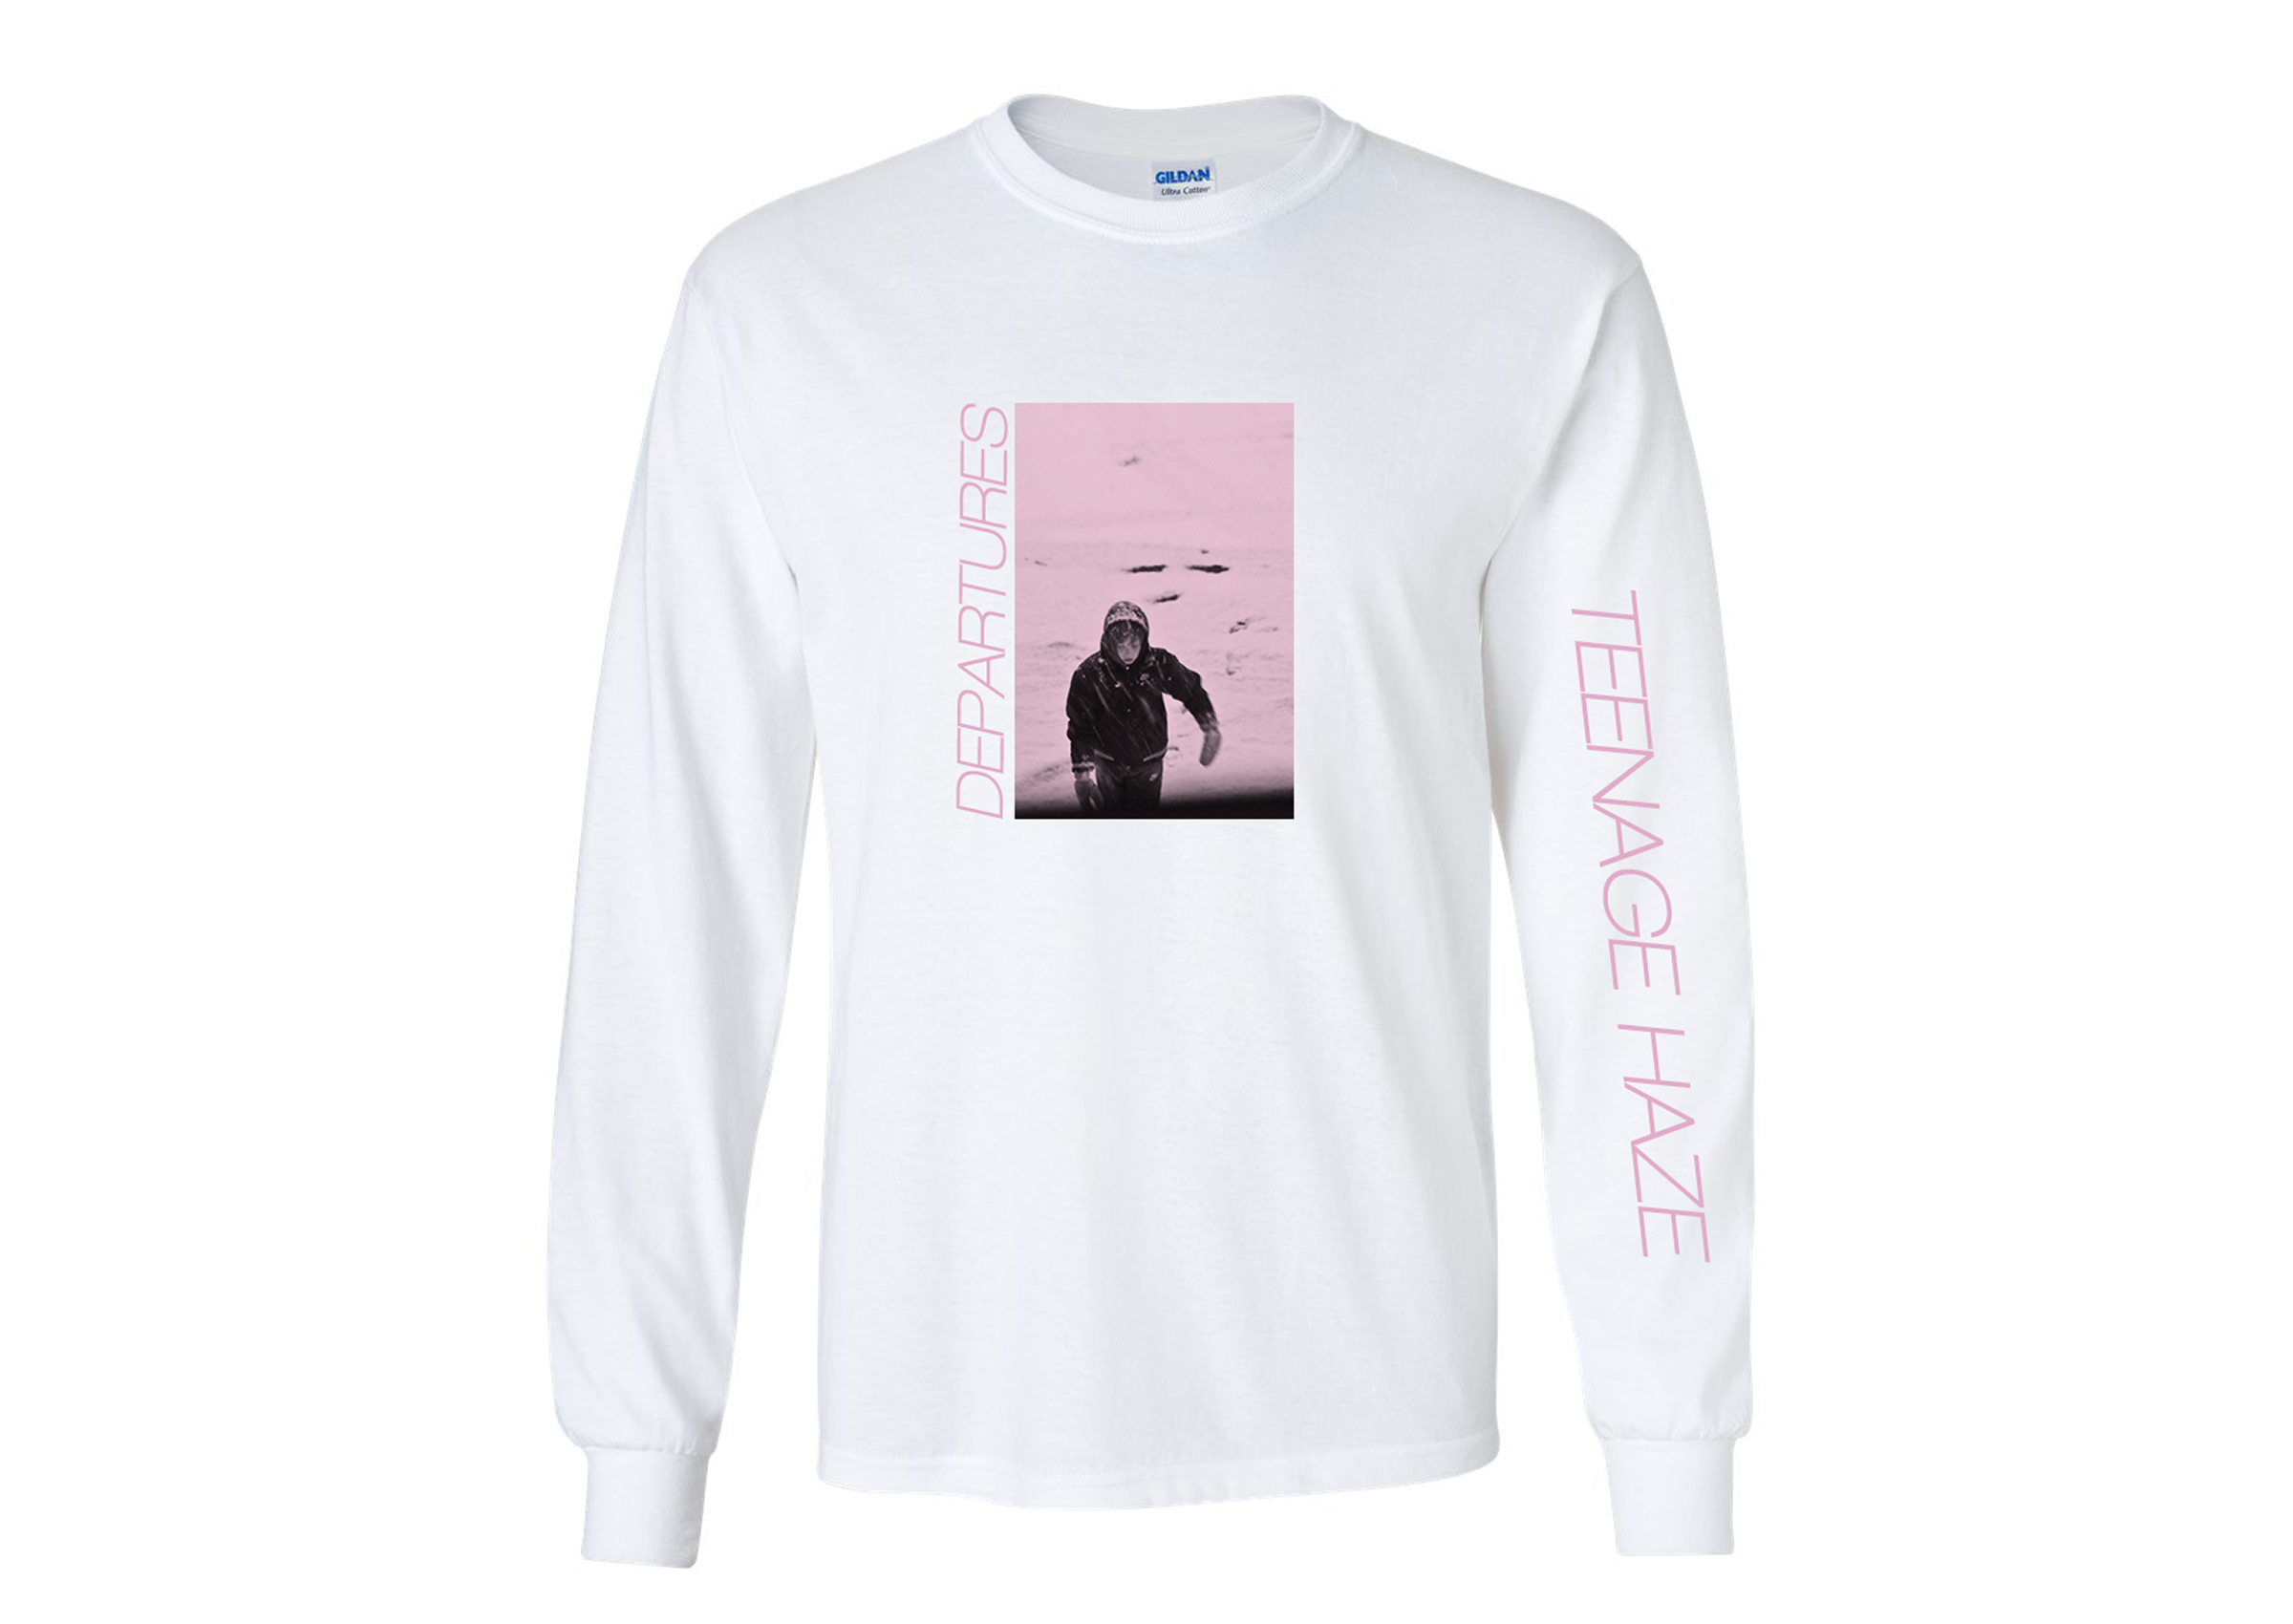 Departures - Teenage Haze long sleeve